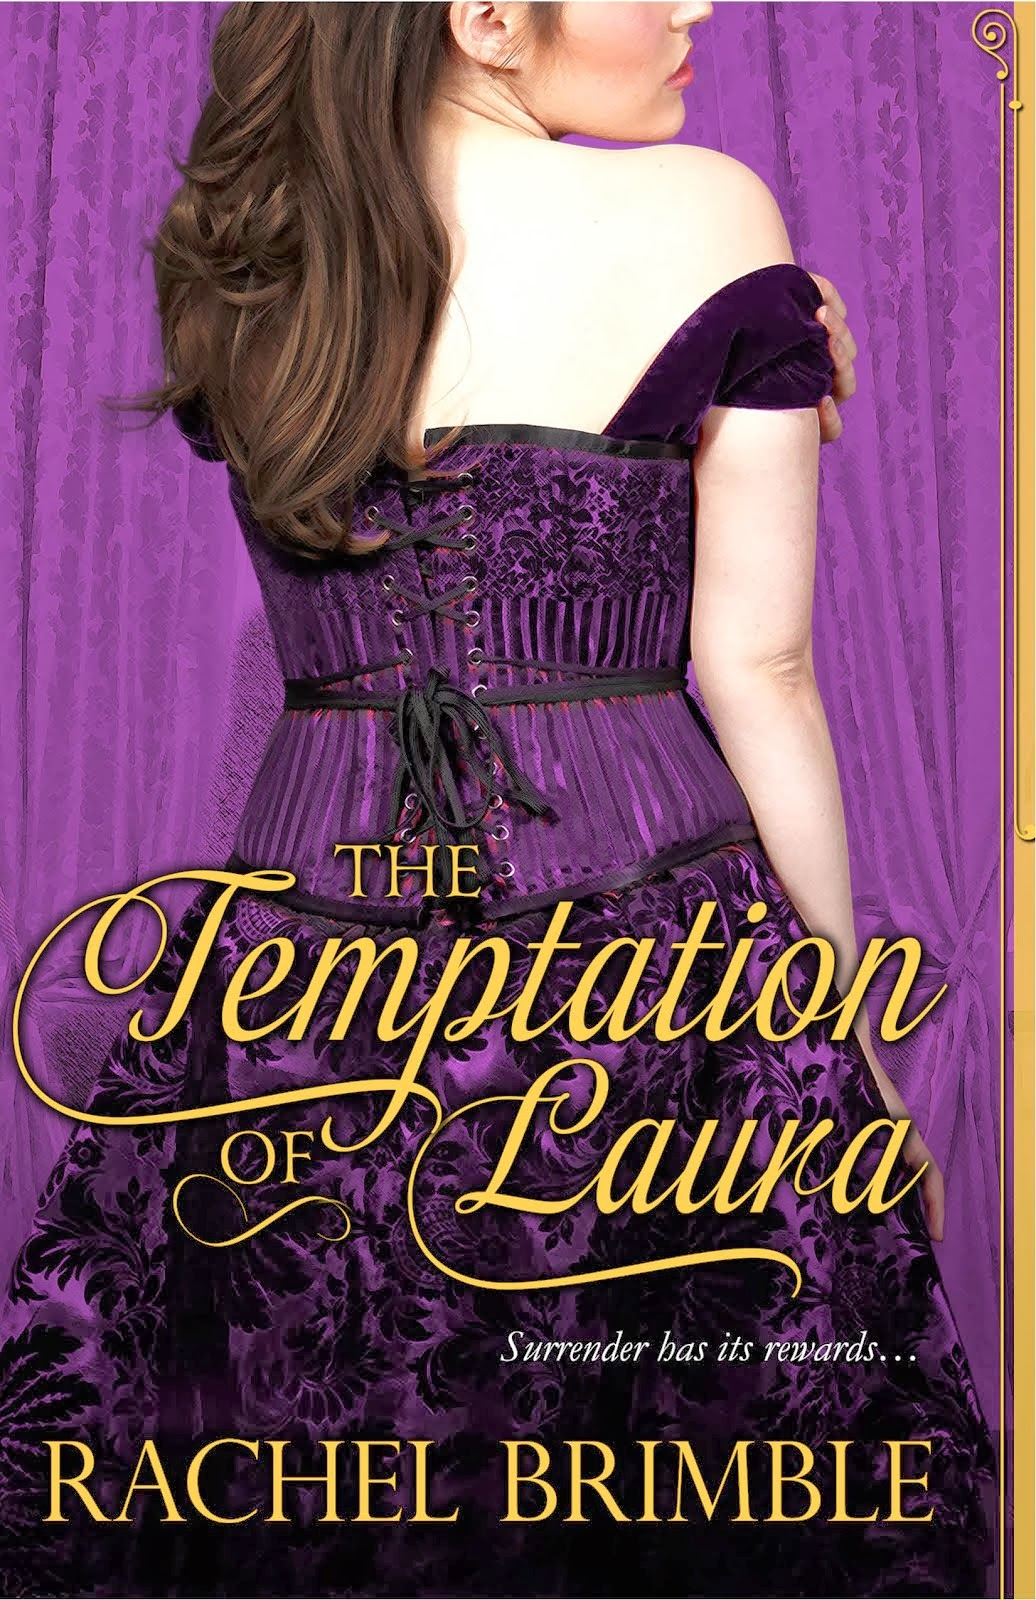 The Temptation of Laura - available now!